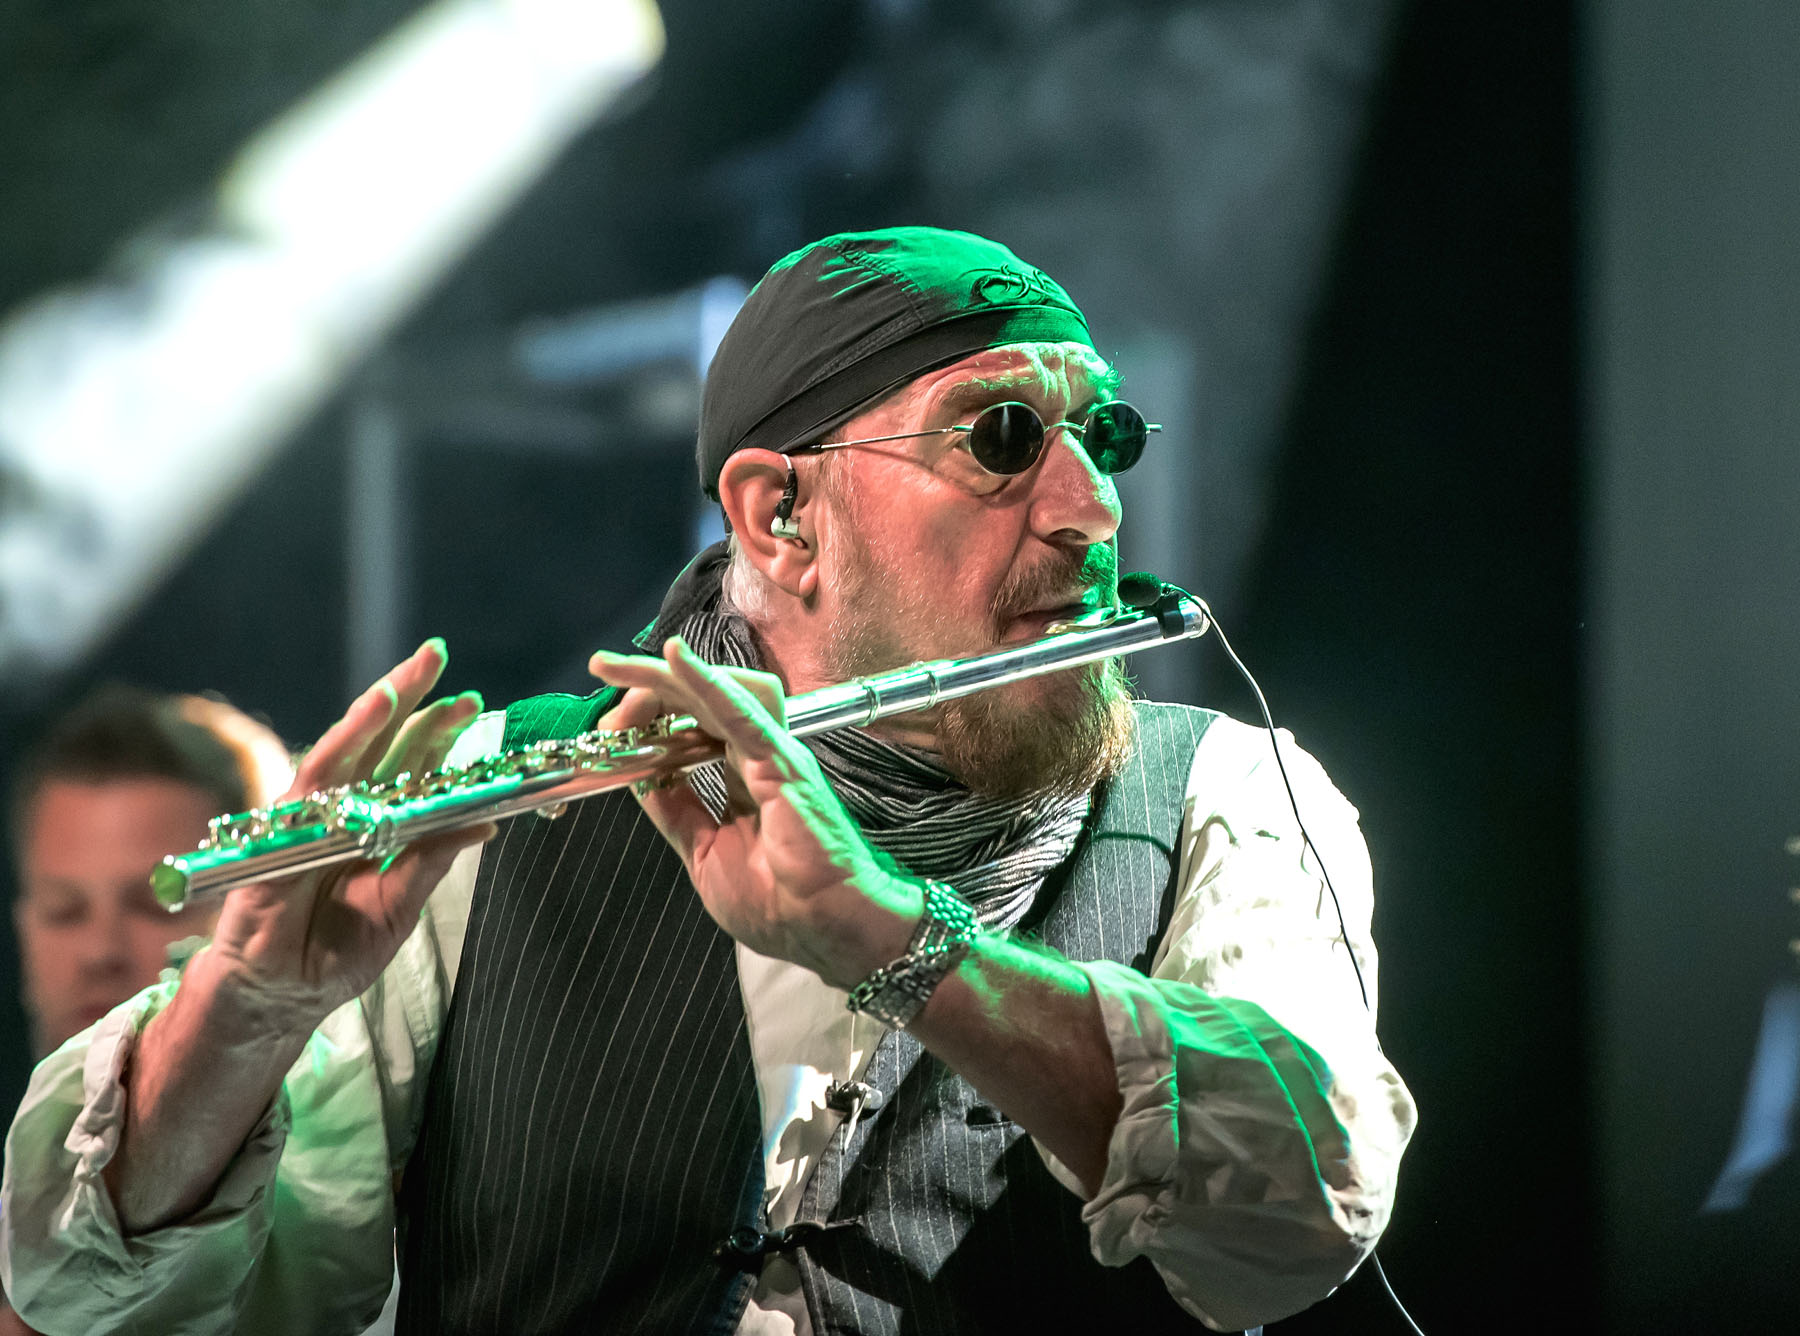 Jethro Tull singer and flautist Ian Anderson will perform Aug. 13 at Musikfest in Bethlehem.  (Courtesy Photo)